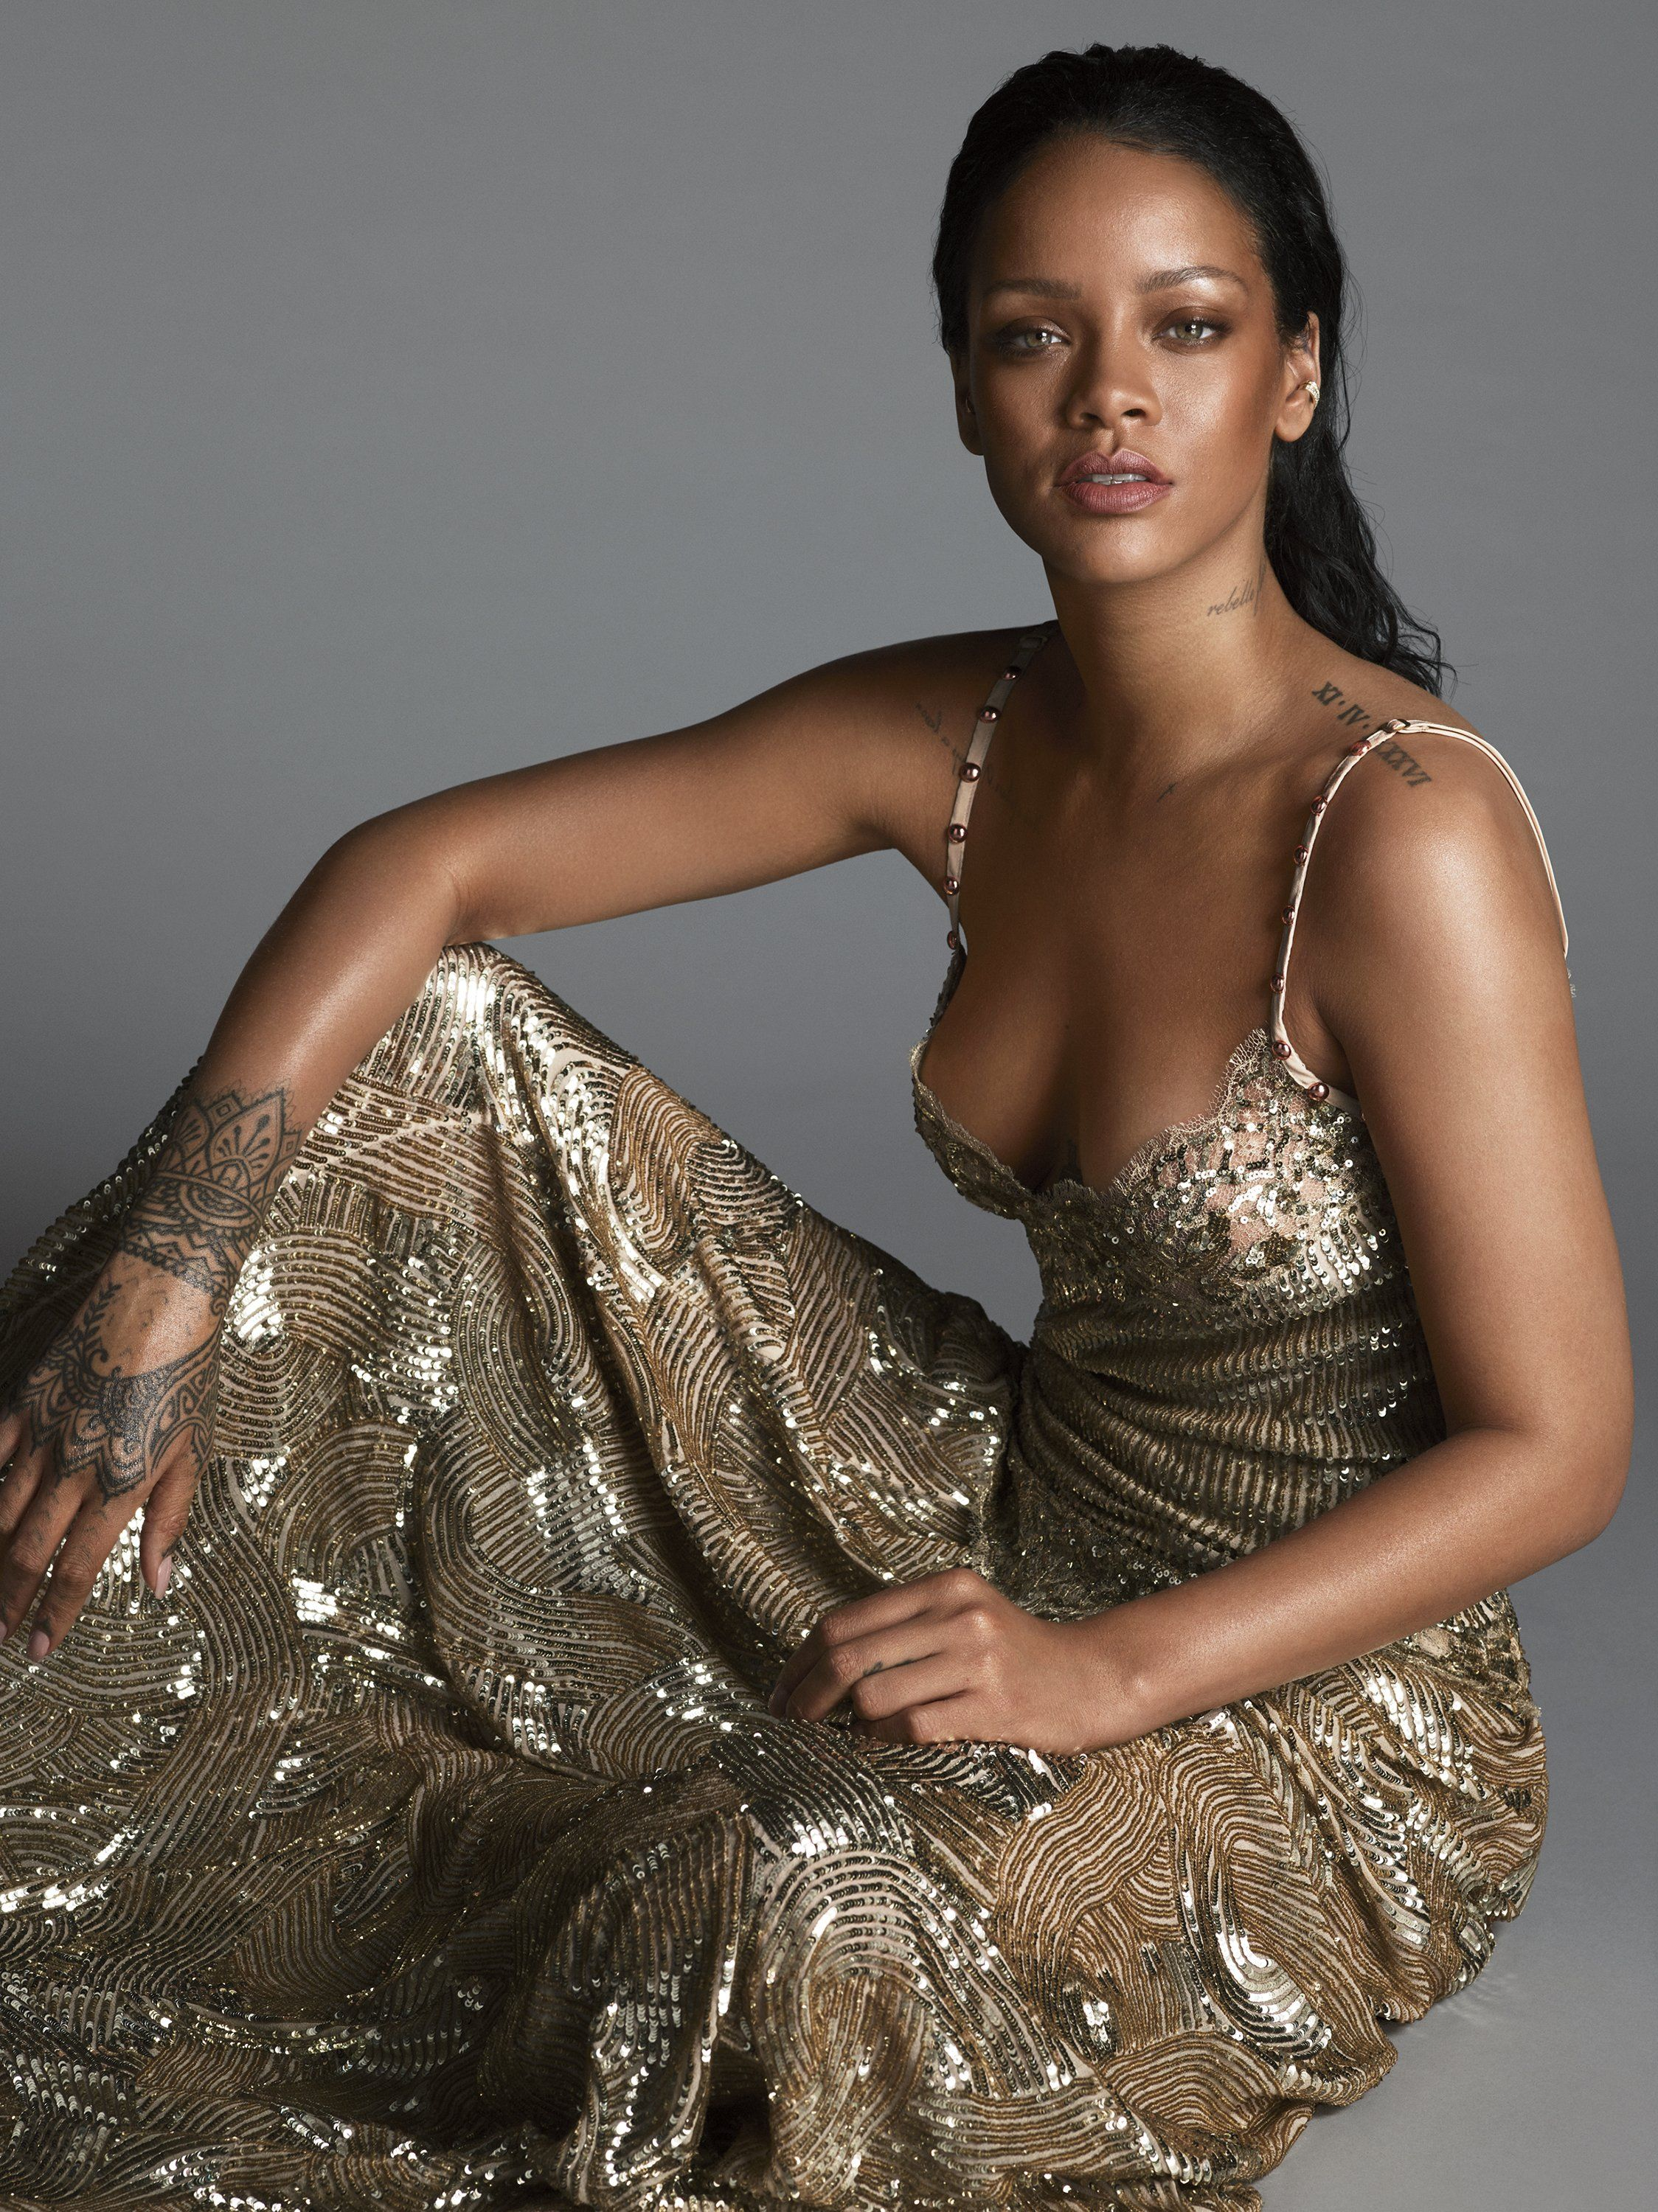 Rihanna Sexy Photos